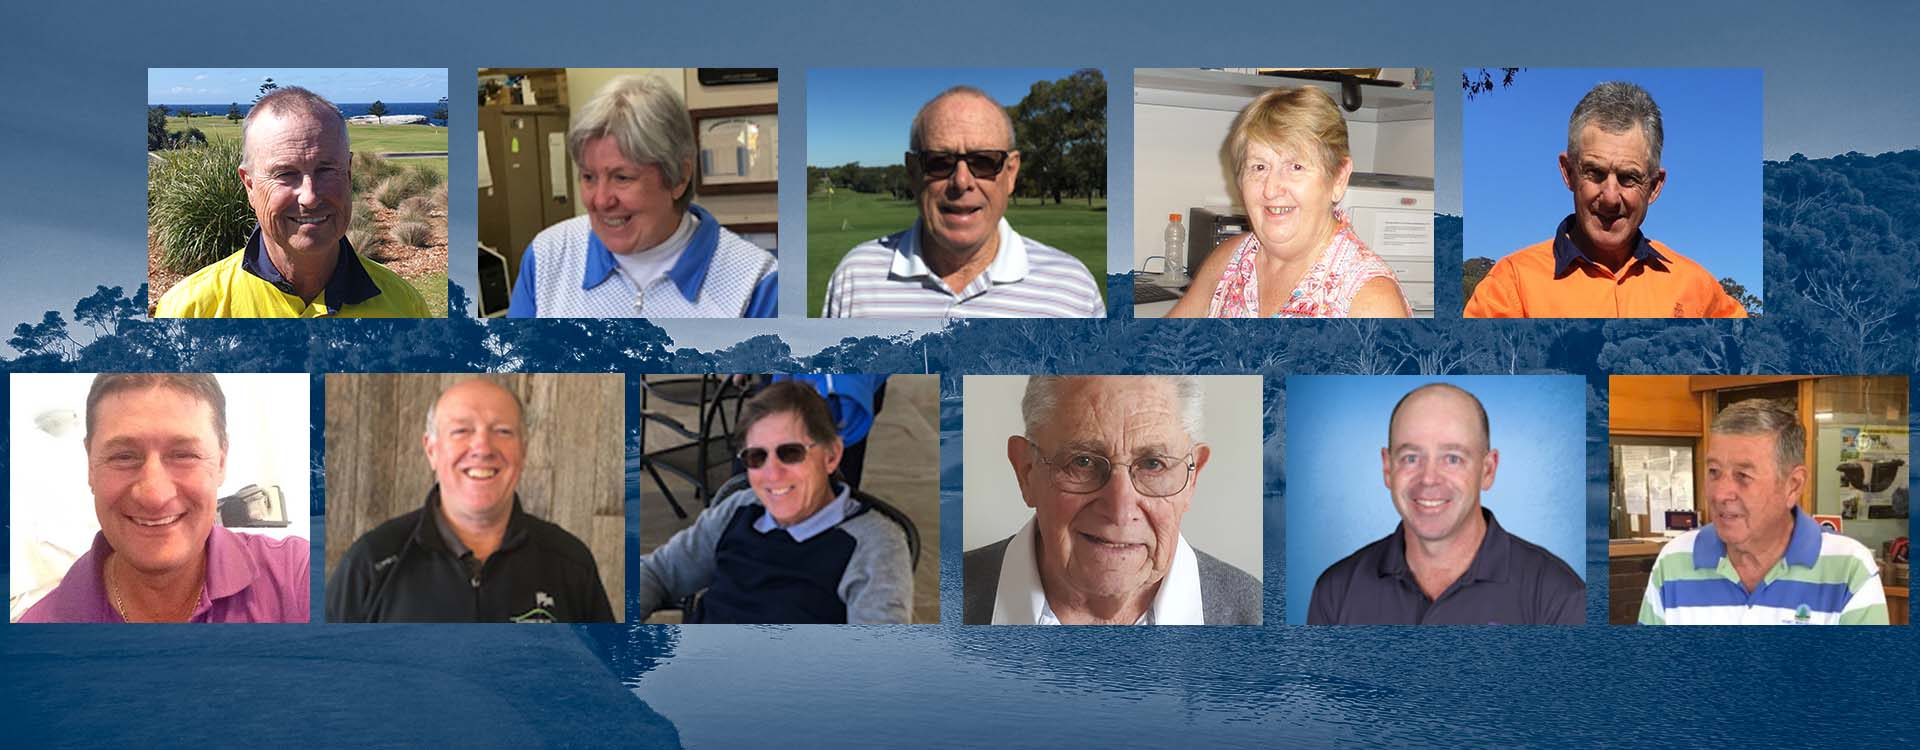 Volunteer of the Year award finalists named